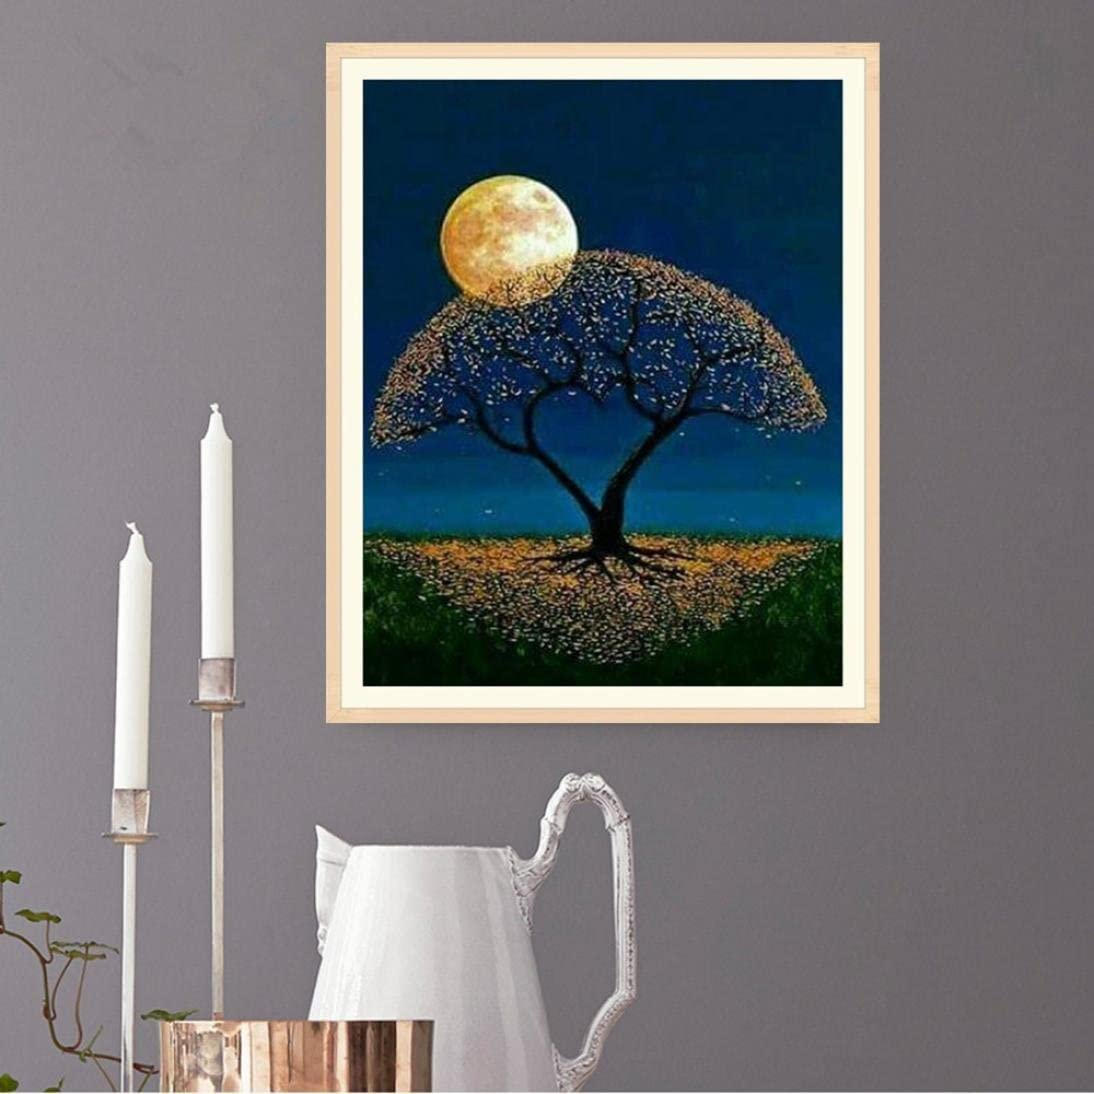 Yeefant Moonlight Tree Embroidery Paintings No Fading 5D Canvas Rhinestone Pasted Pasted DIY Diamond Cross Stitch Home Wall Decor for Bedroom Living Room,10x12 Inch